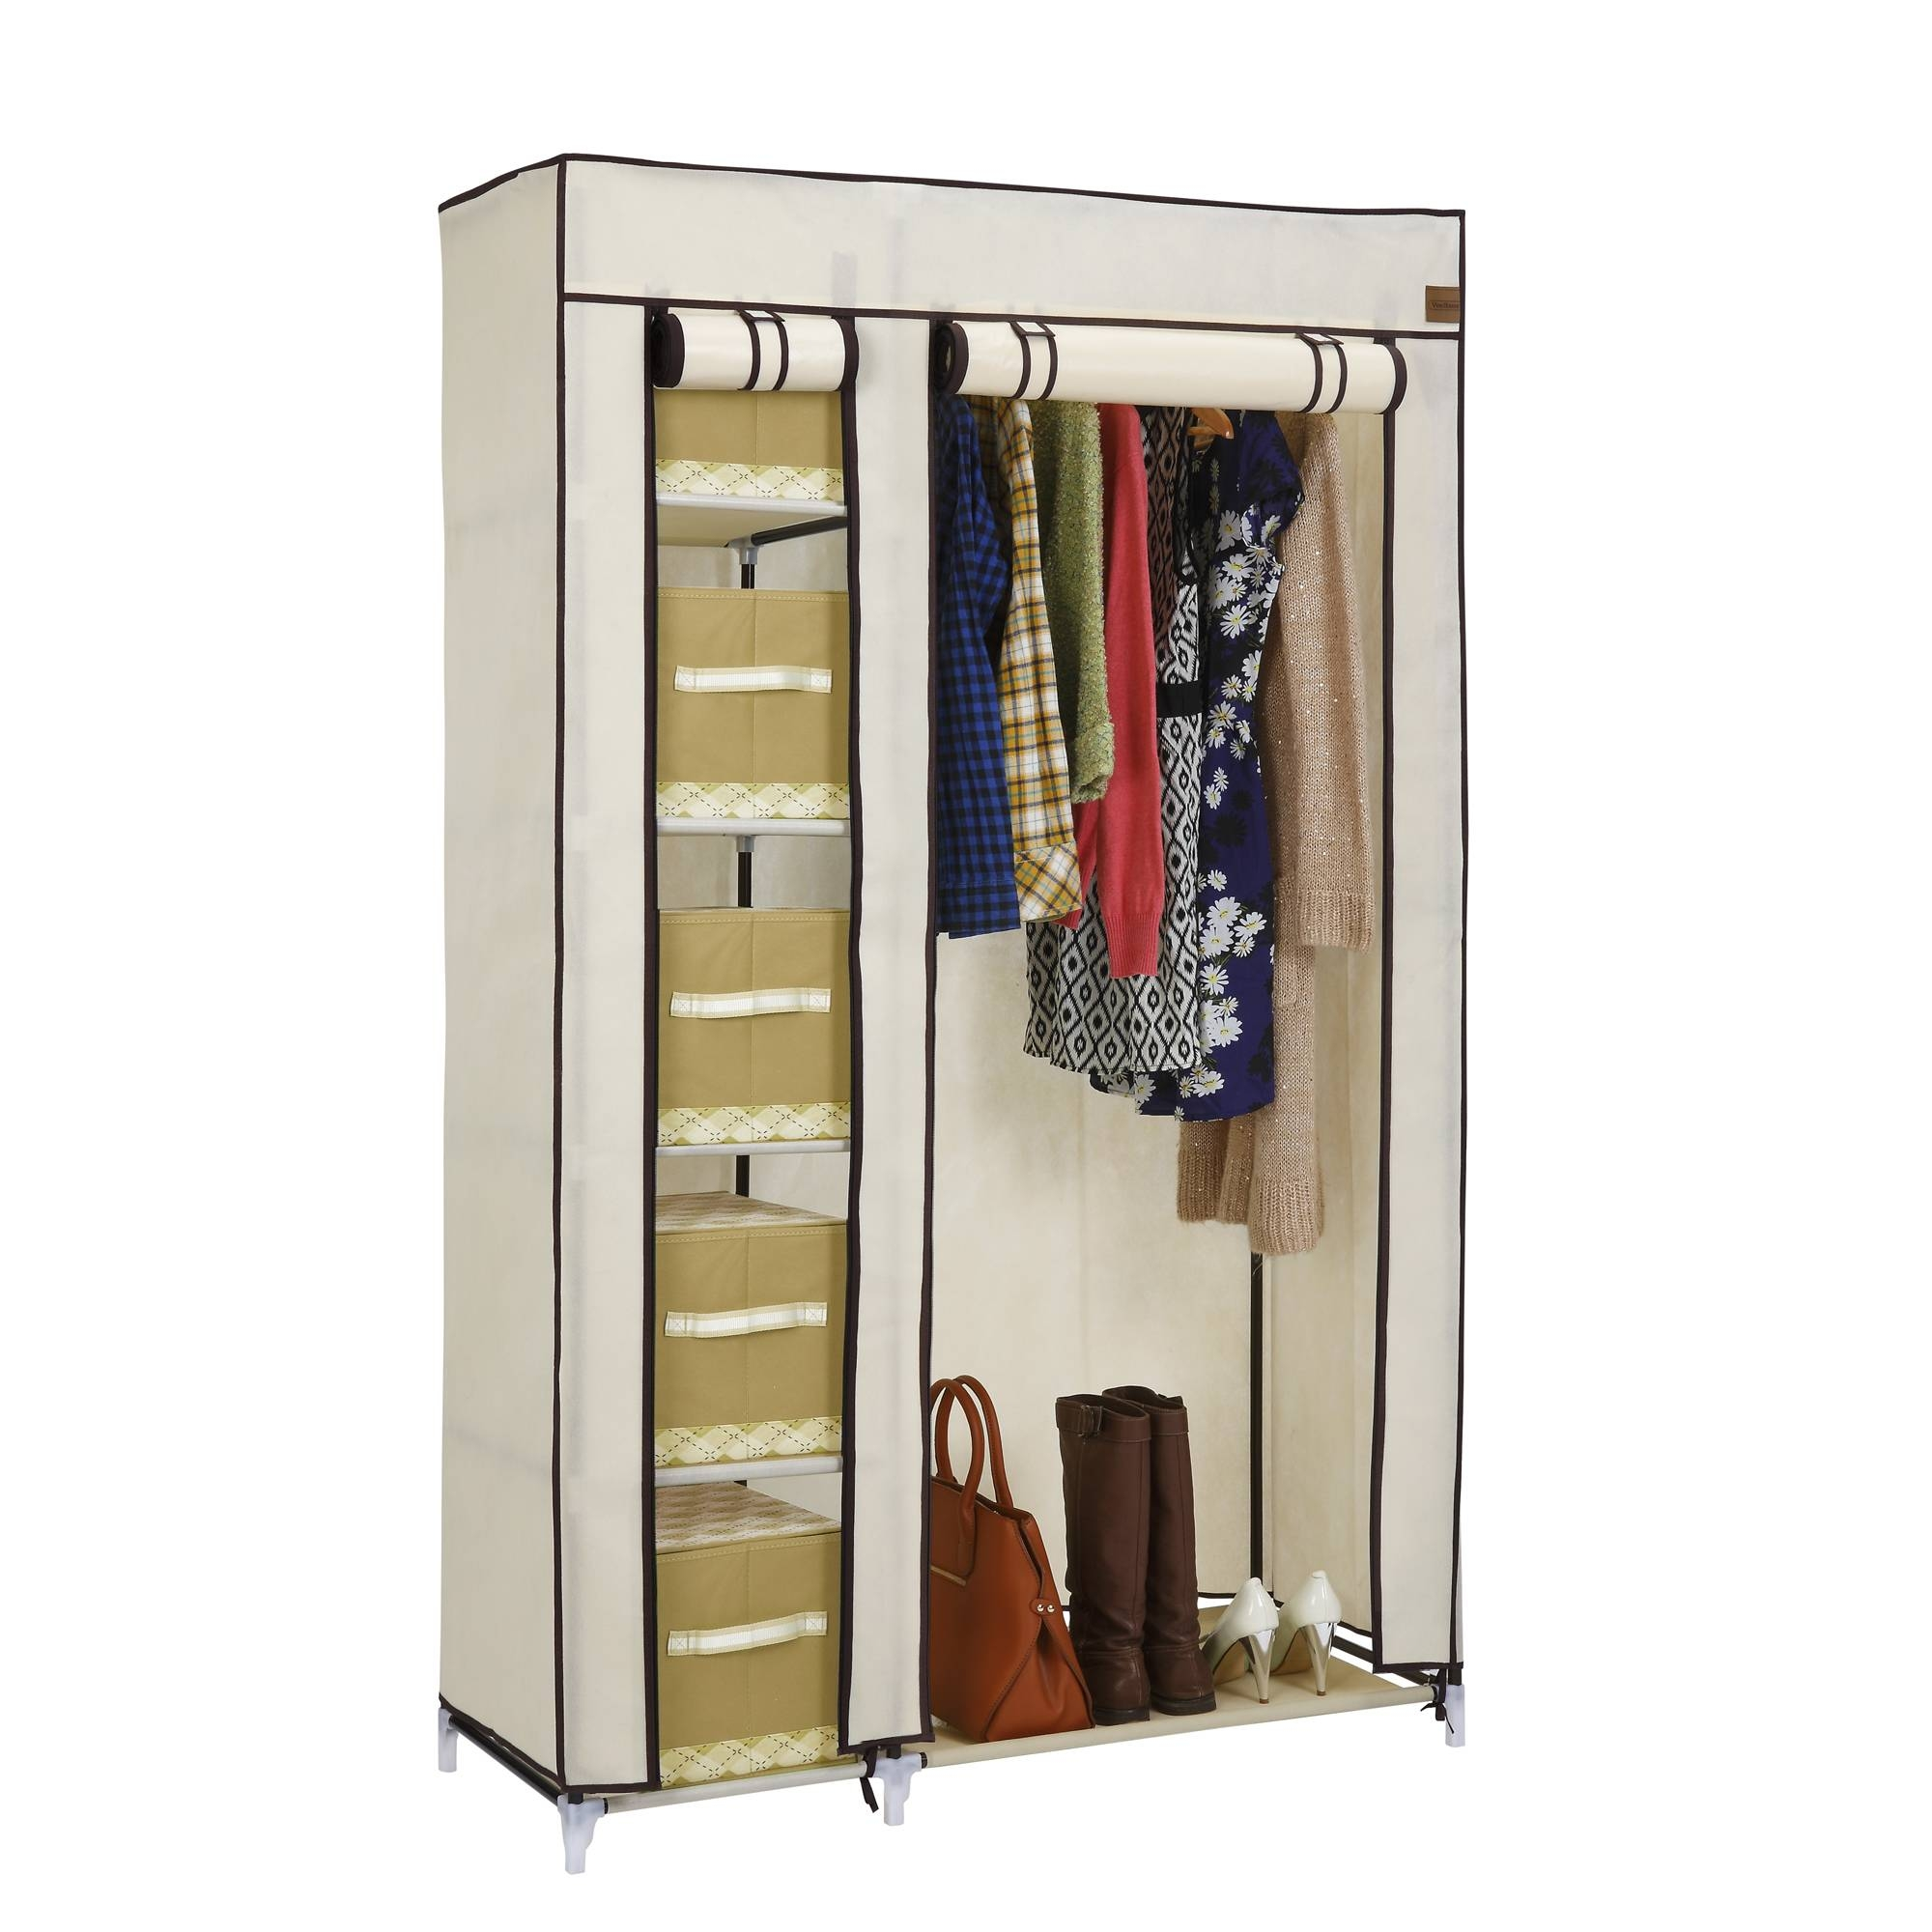 Vonhaus Double Canvas Effect Wardrobe Clothes Hanging Rail Shelves with Double Rail Wardrobe (Image 21 of 30)